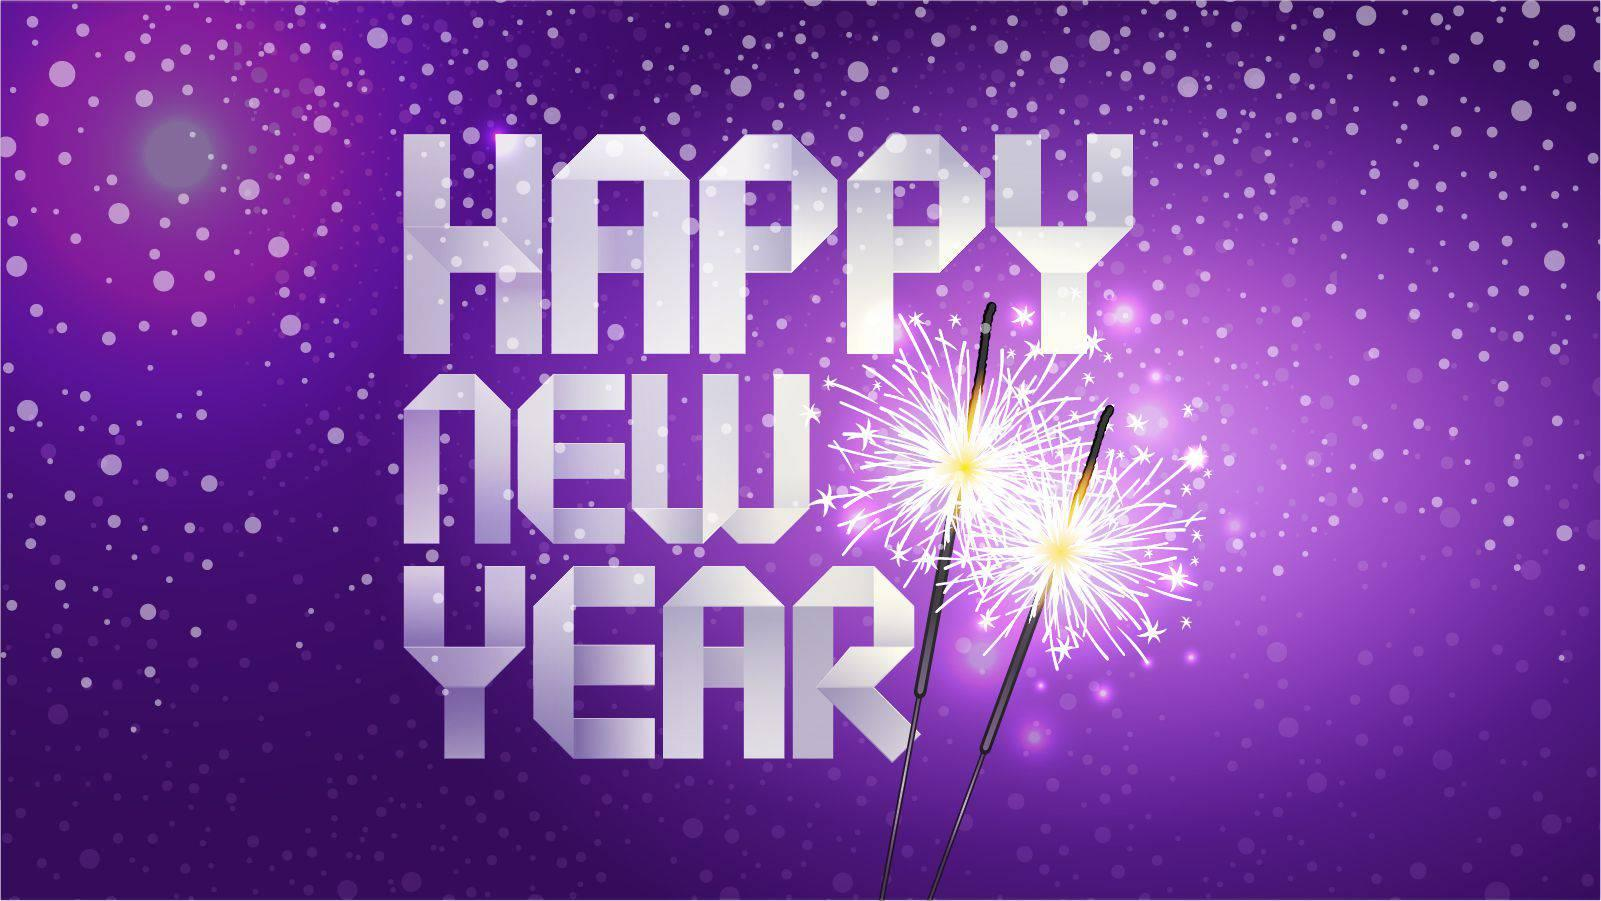 Happy New Year written in white on a purple background with two sparklers